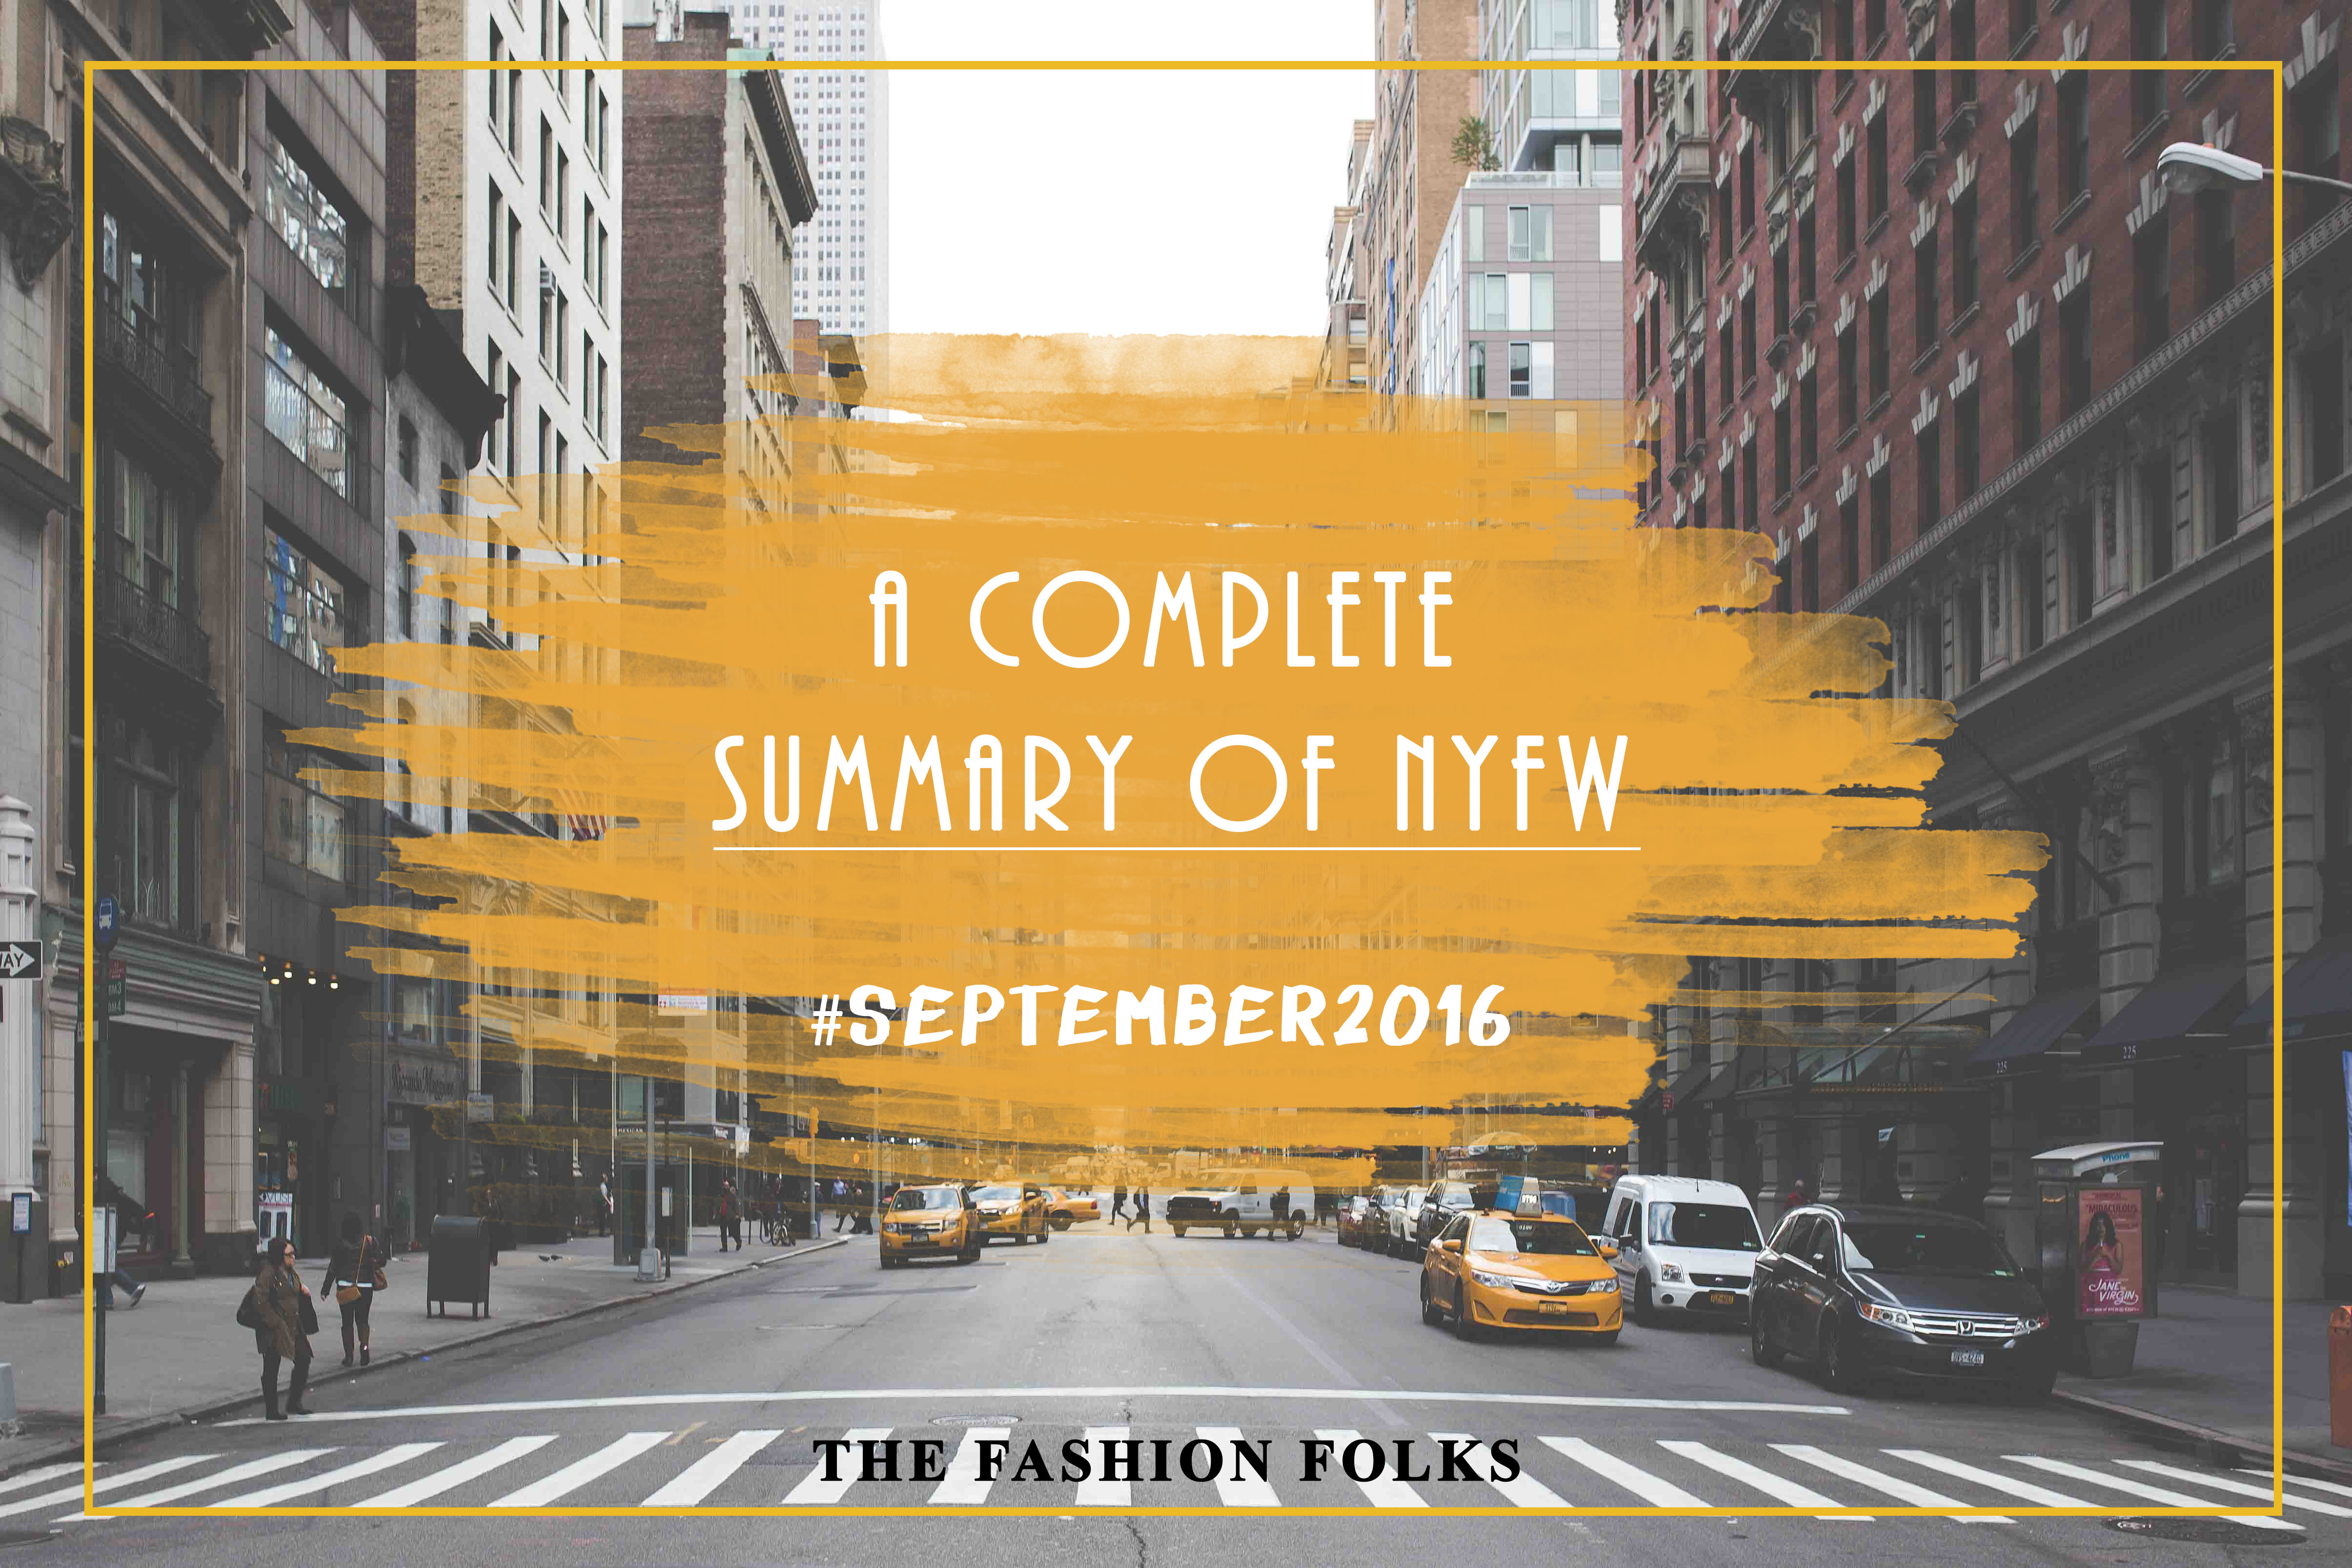 A complete summary of NYFW. The trends, the buzz and the shows! | The Fashion Folks